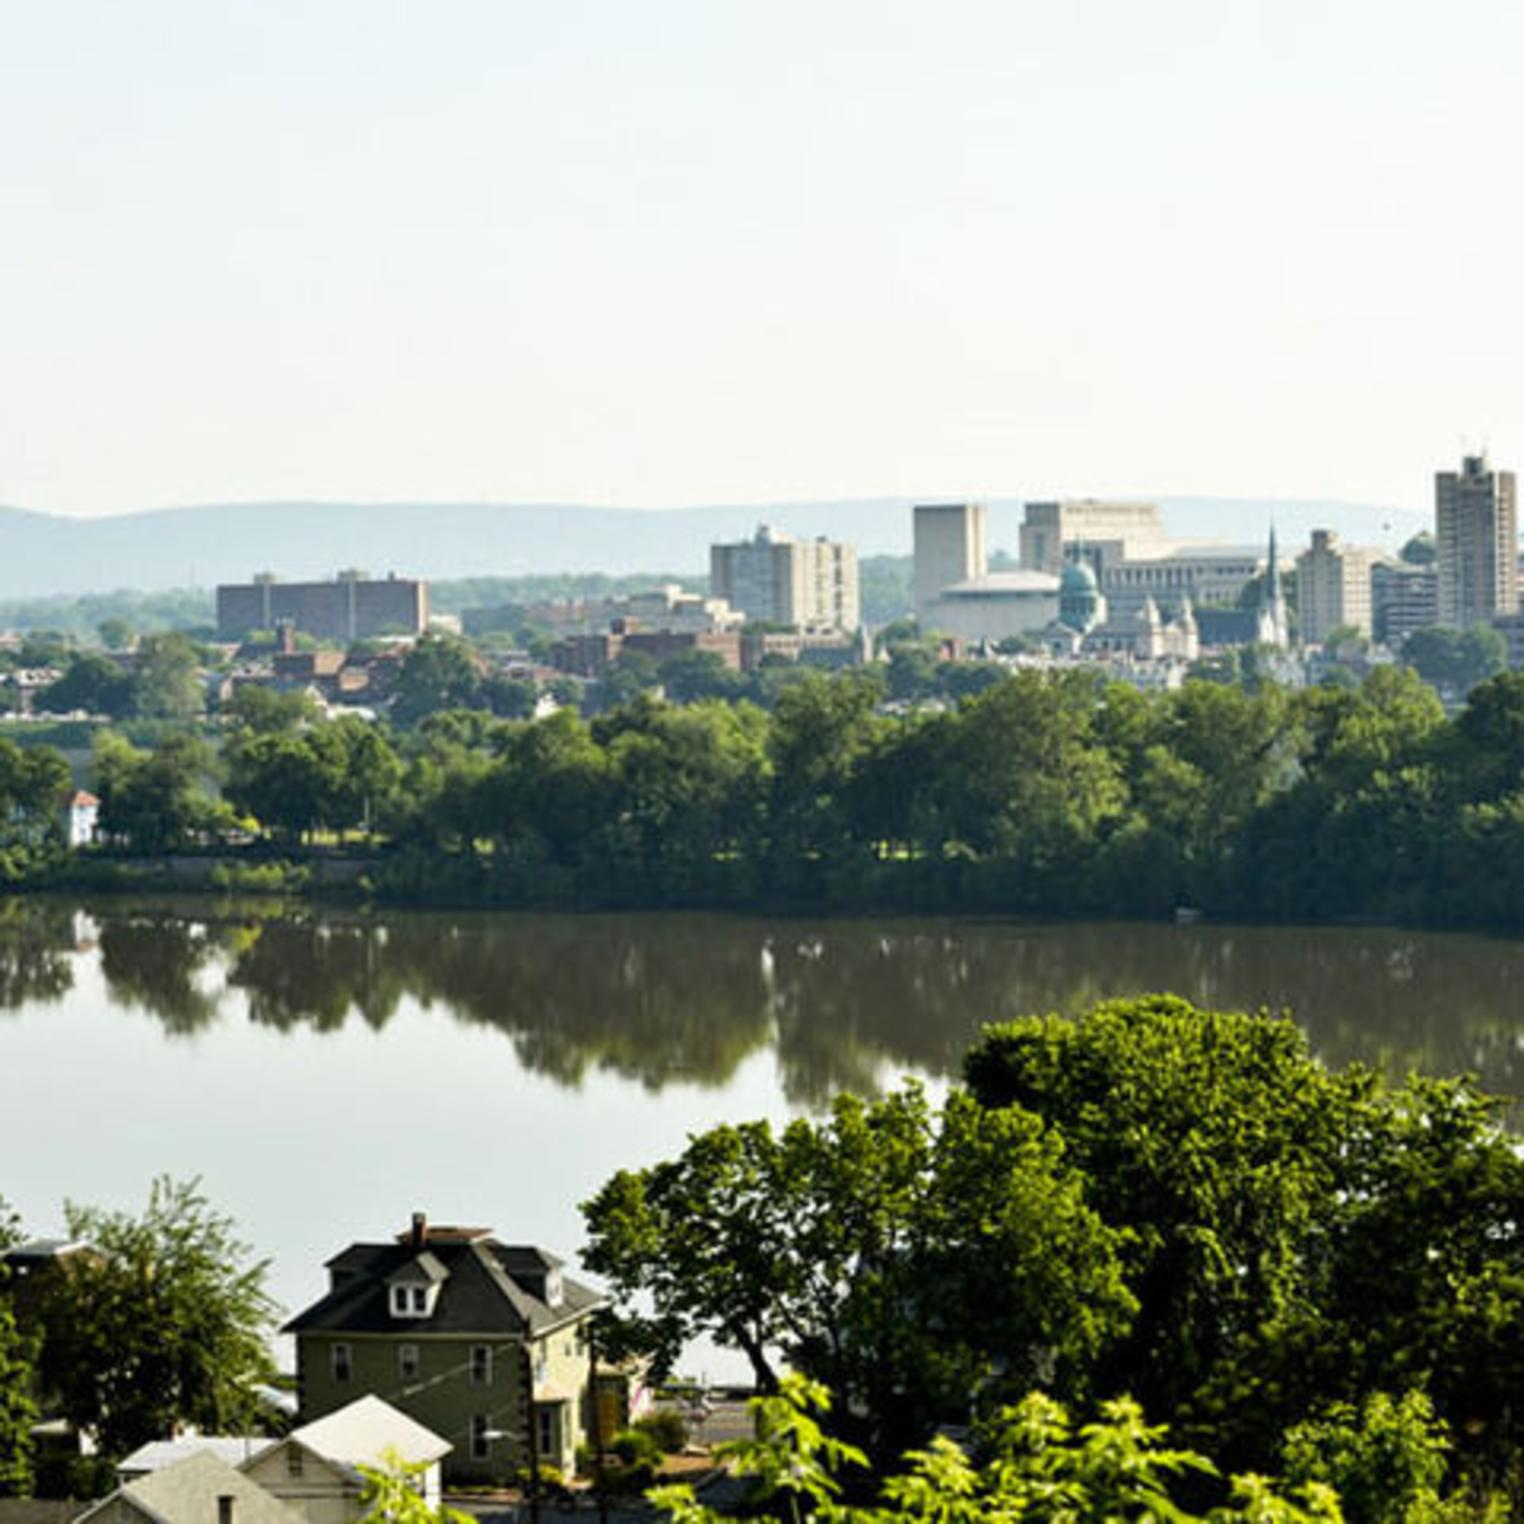 View of Susquehanna River and Harrisburg from Negley Park in Lemoyne